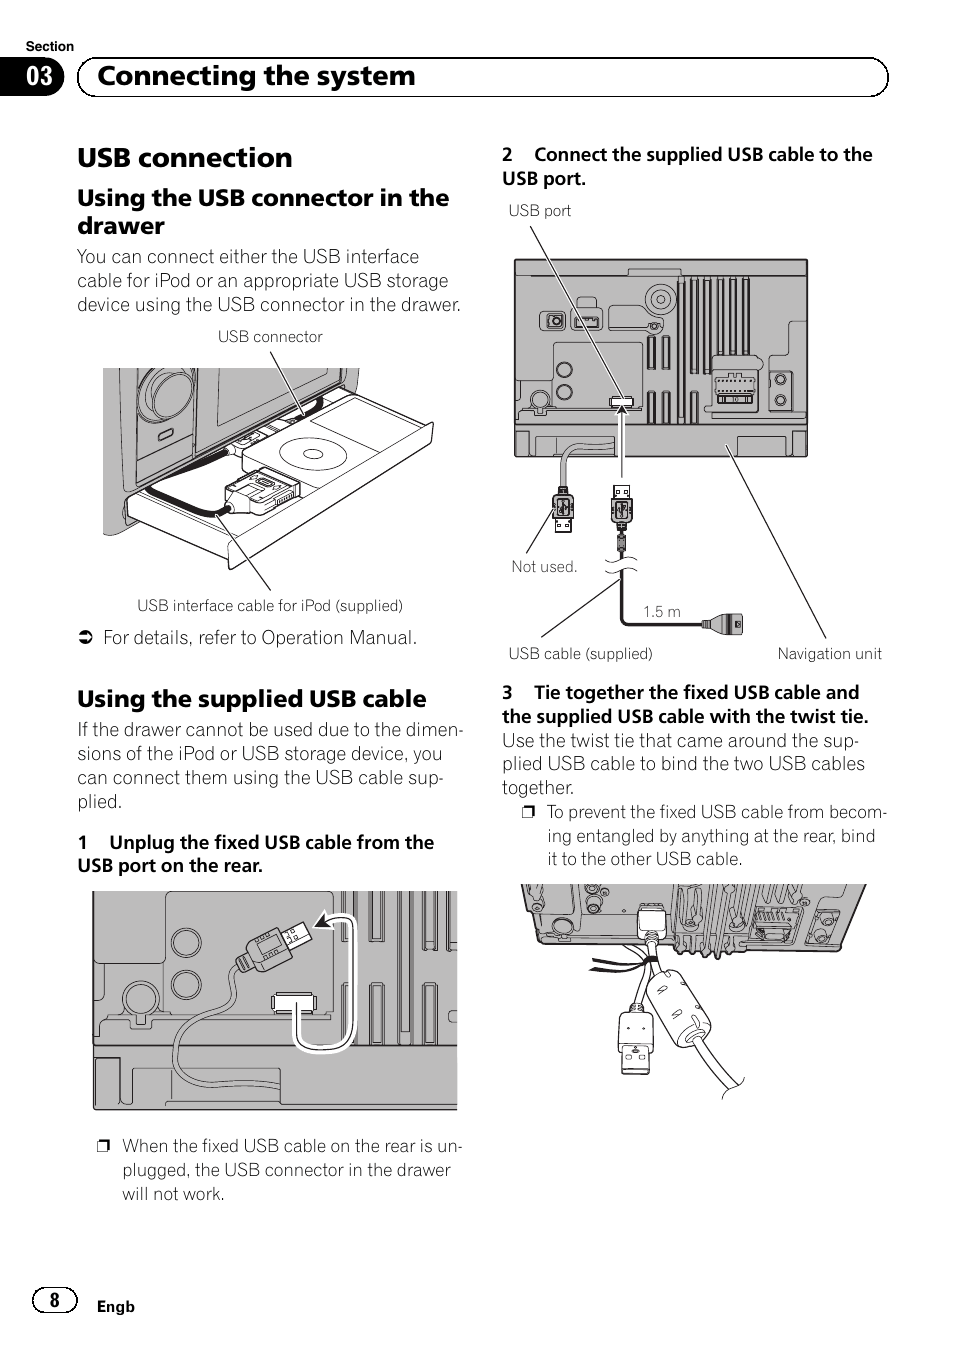 hight resolution of usb connection using the usb connector in the drawer using the supplied usb